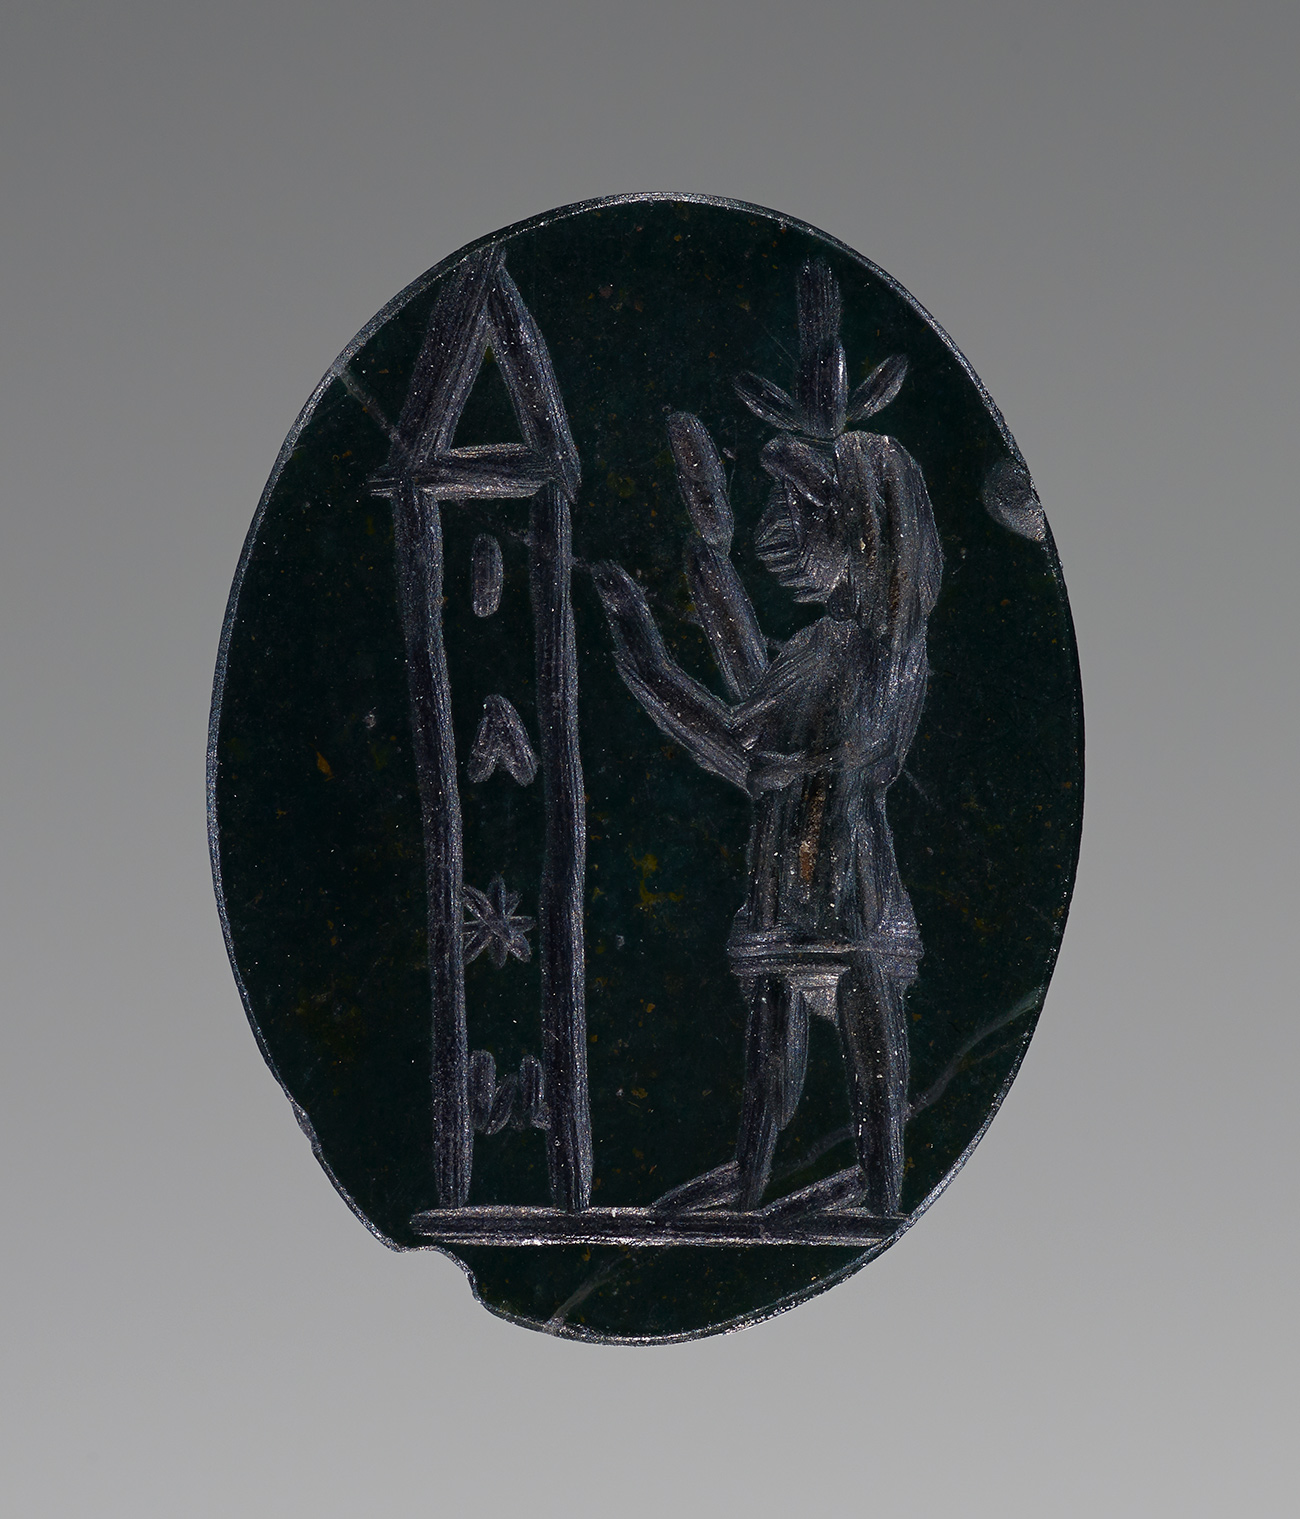 Closeup image of a dark blue carved gem. Engraved on the gem is a representation of a obelisk at left, and a subject at right with raised hands towards the obelisk.